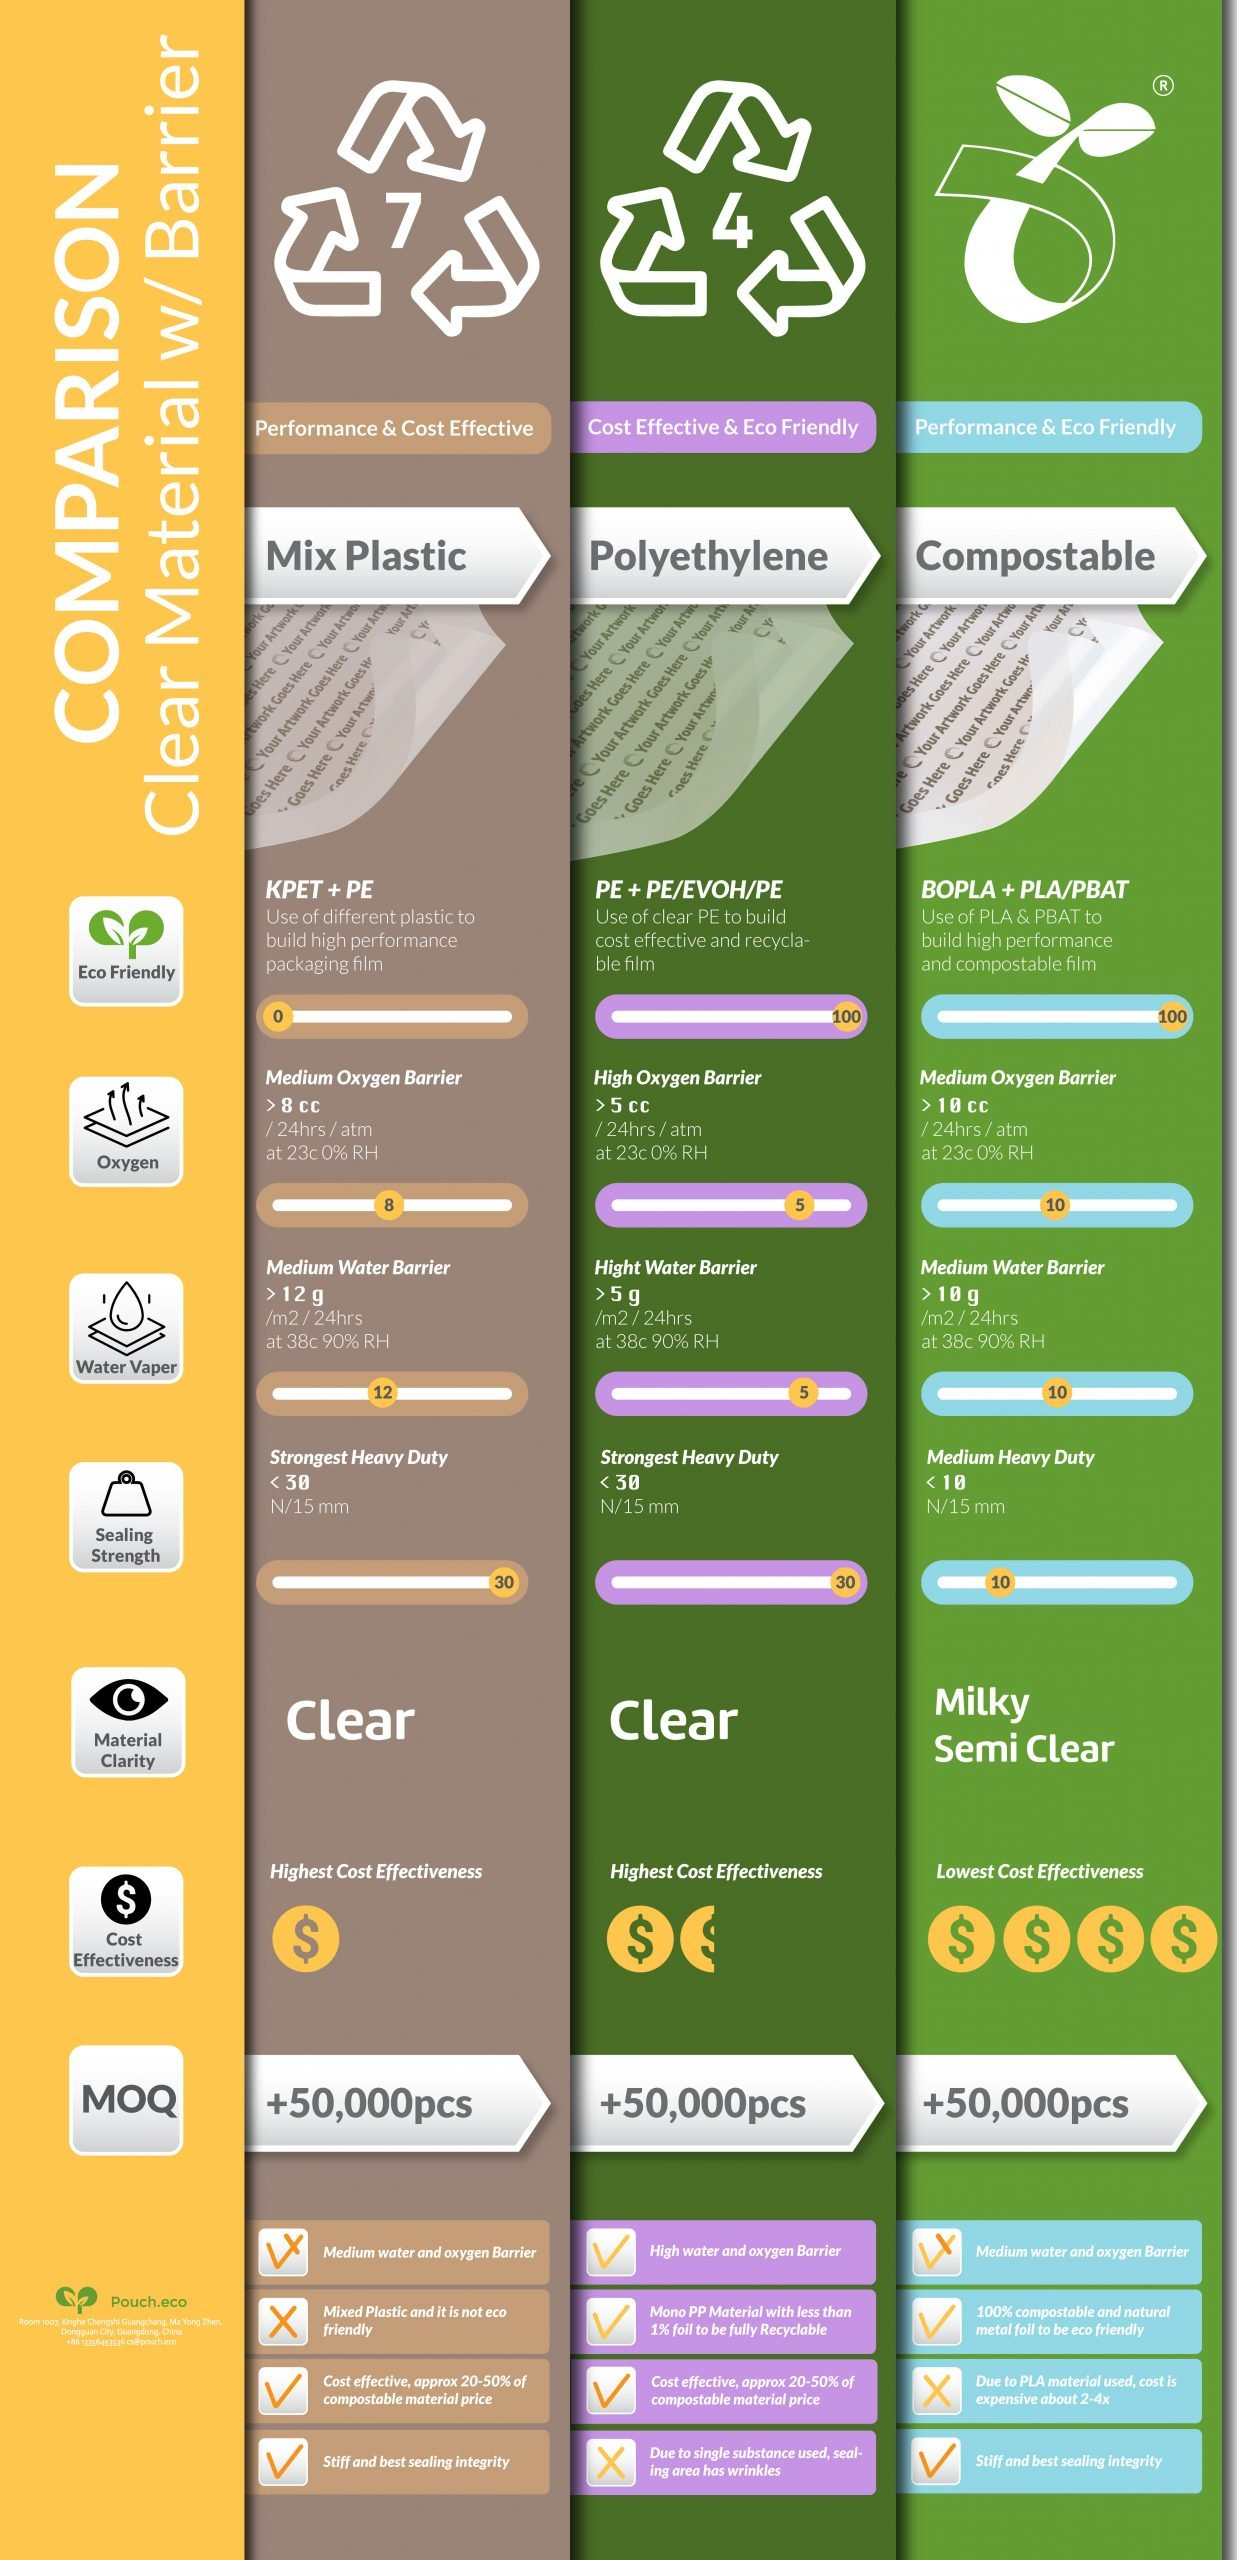 clear-barrier-packaging-material-compare